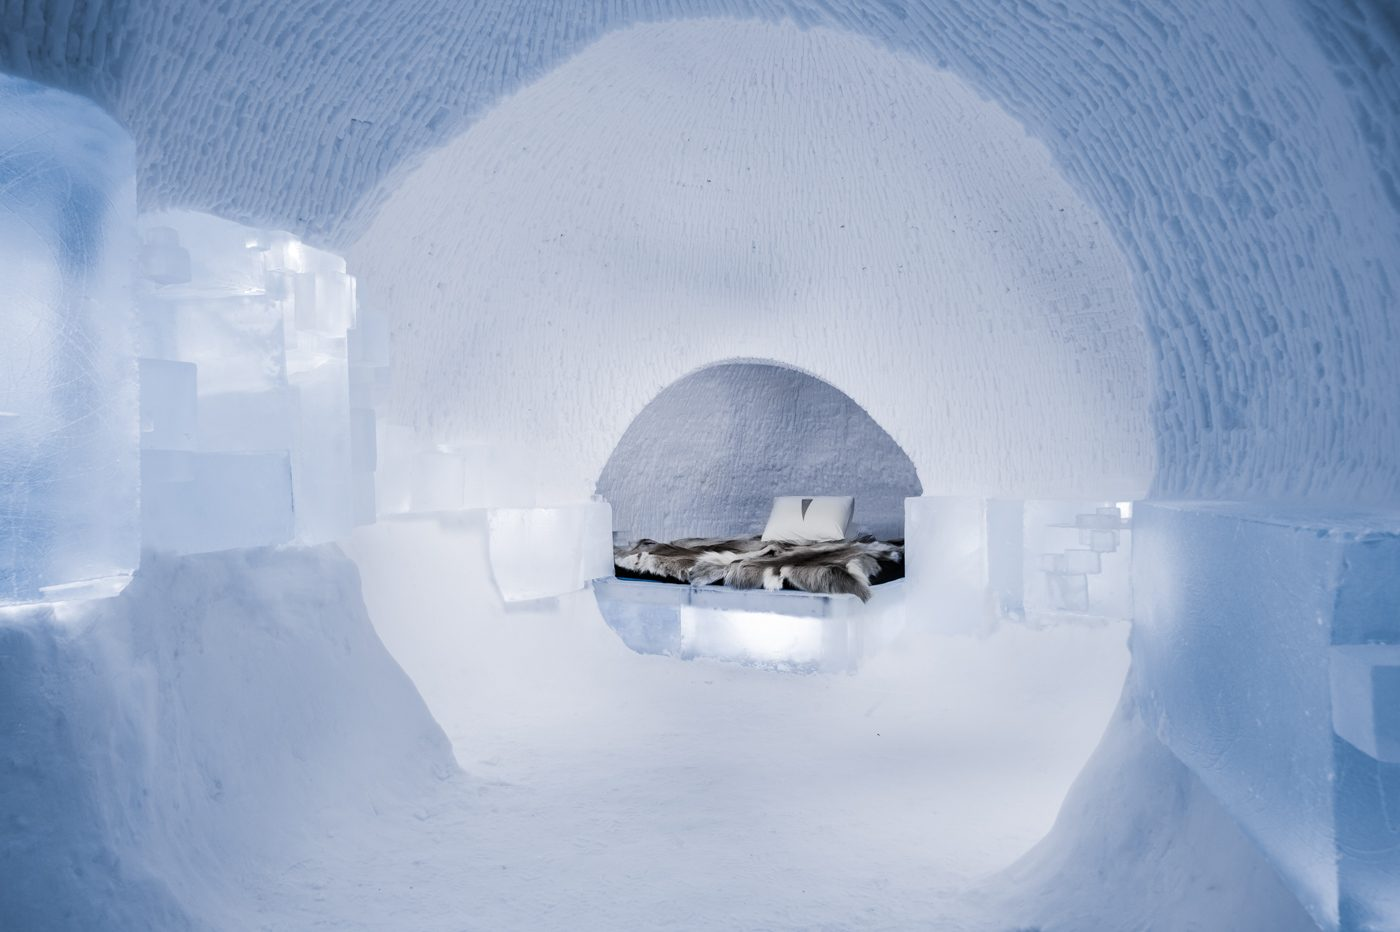 art-suite-a-rich-seam-icehotel-28-1400x932.jpg